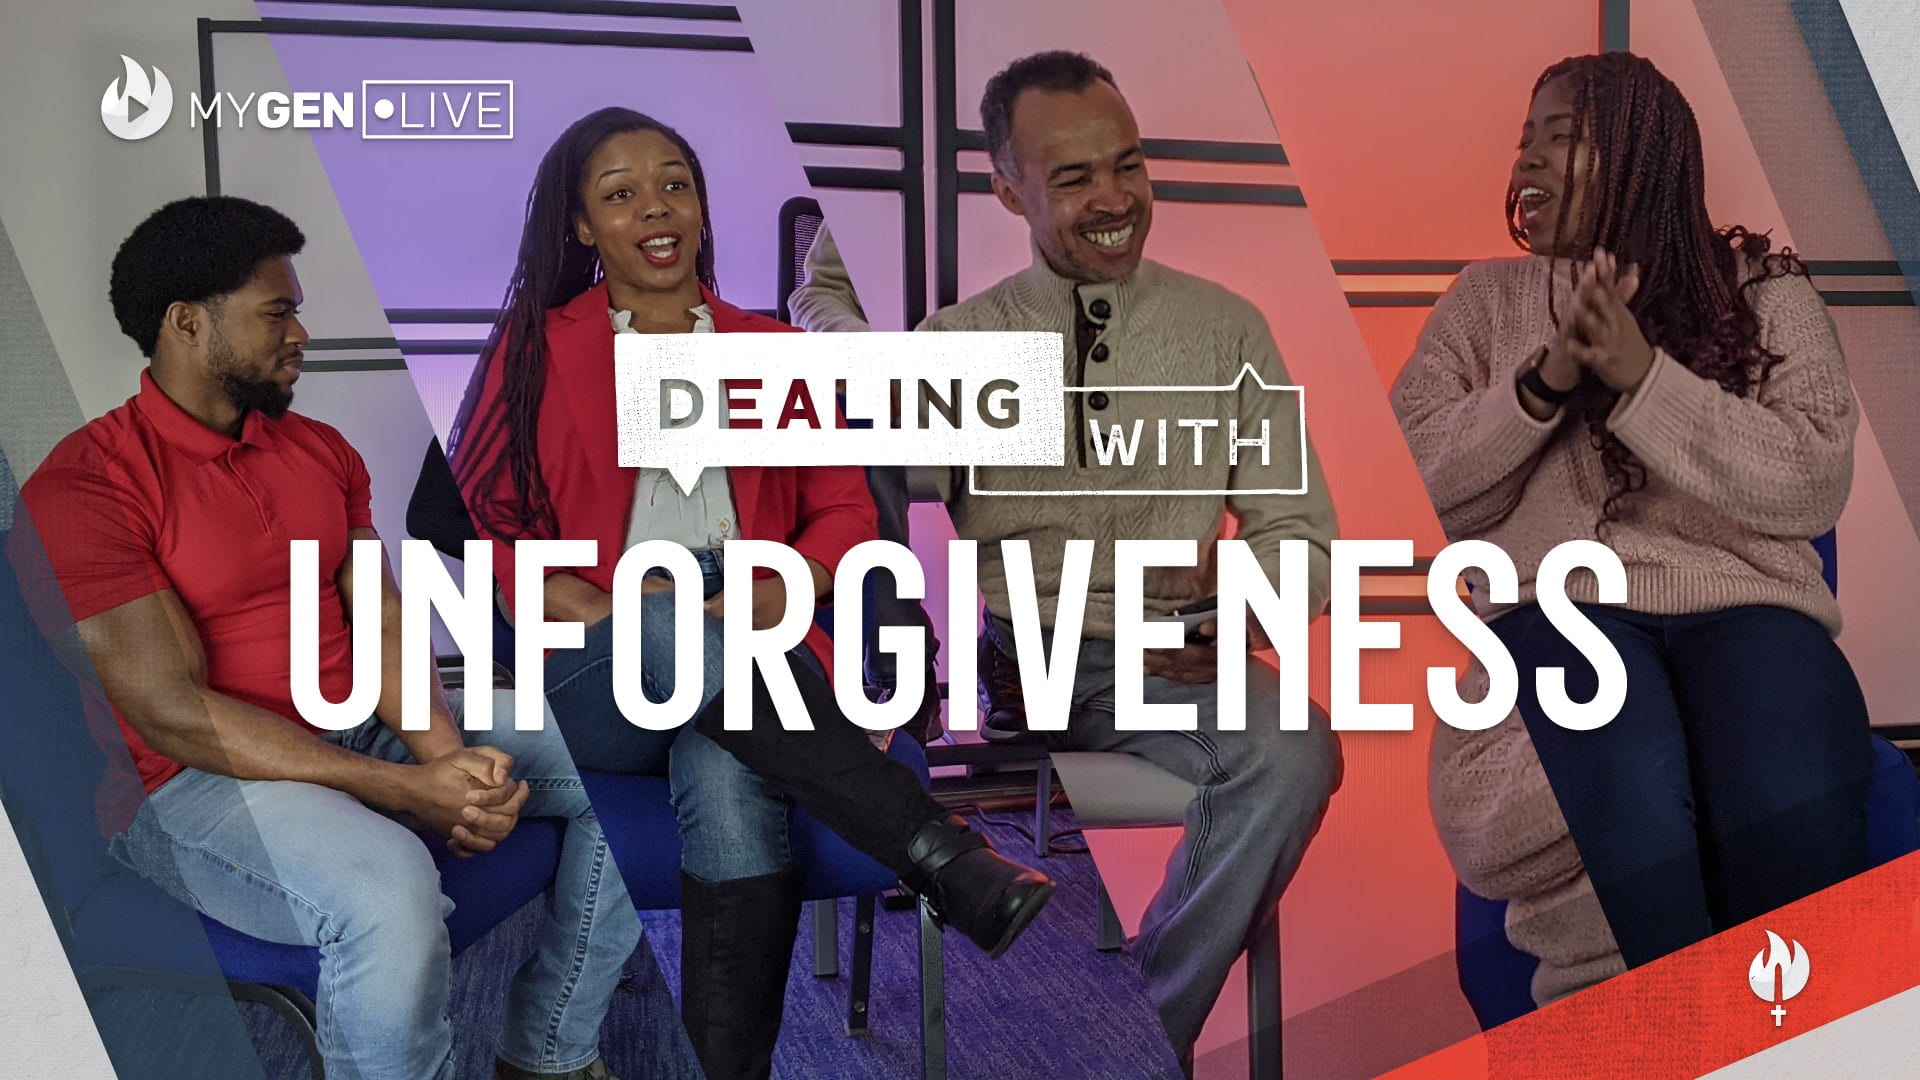 MyGen LIVE: Dealing With Unforgiveness